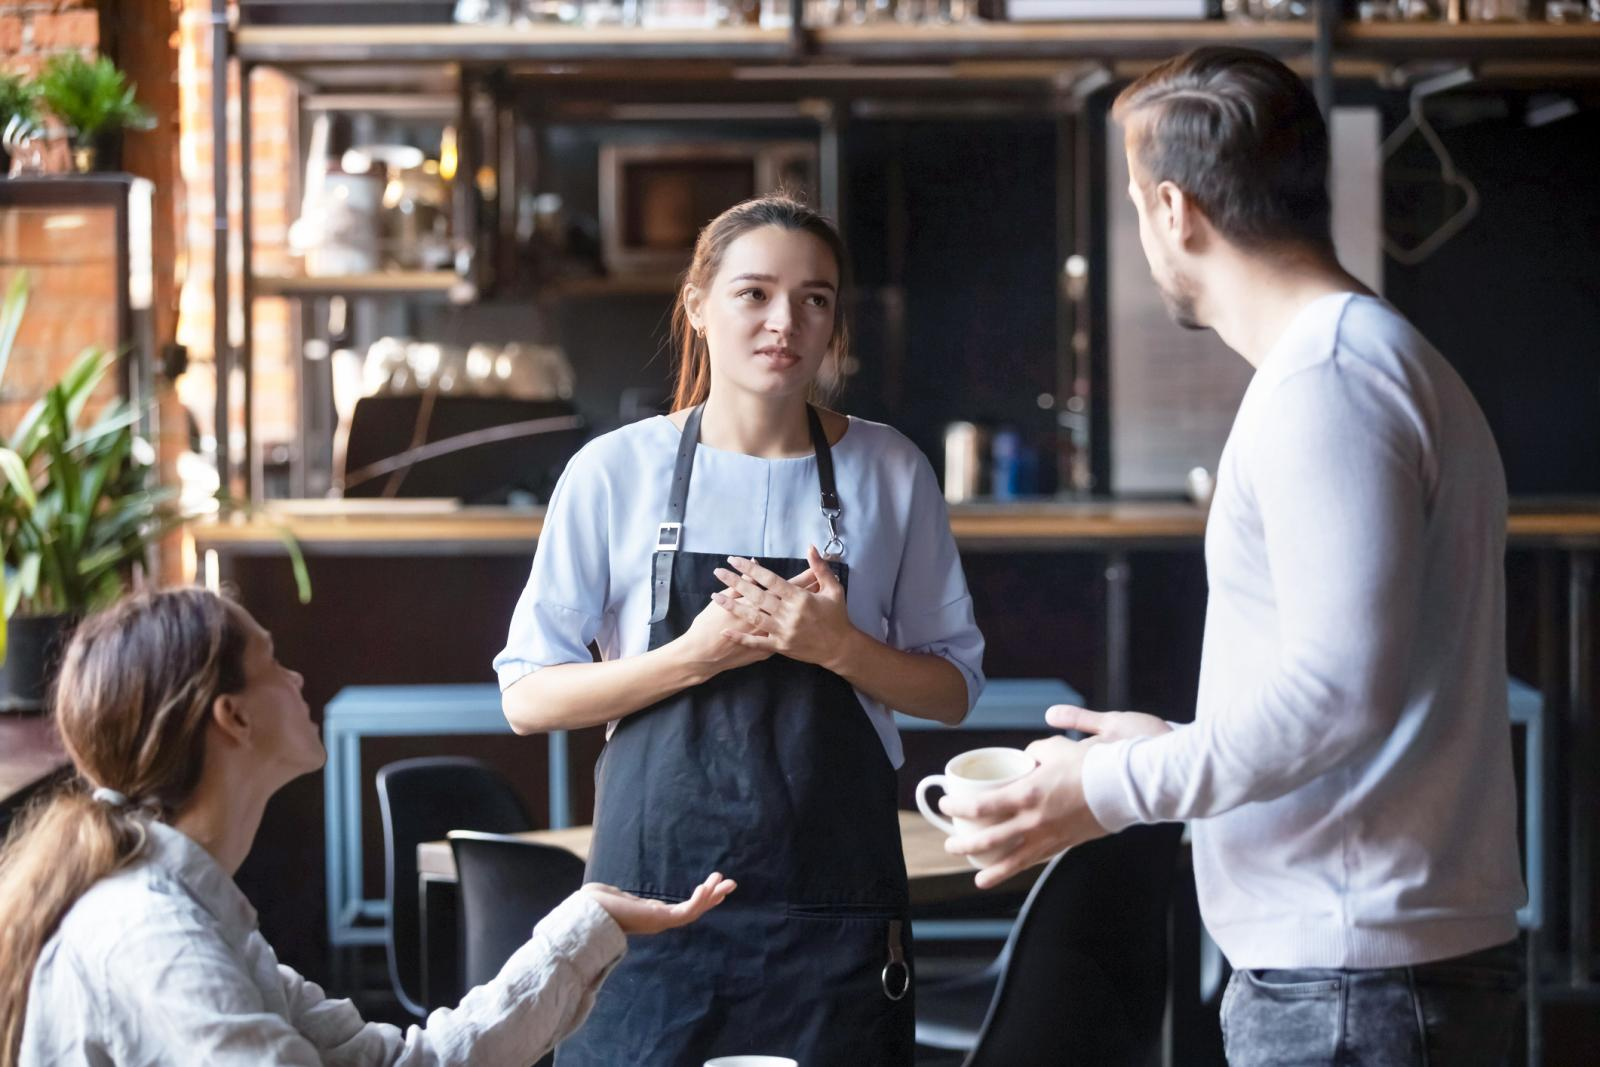 Dissatisfied restaurant clients complaining about bad service